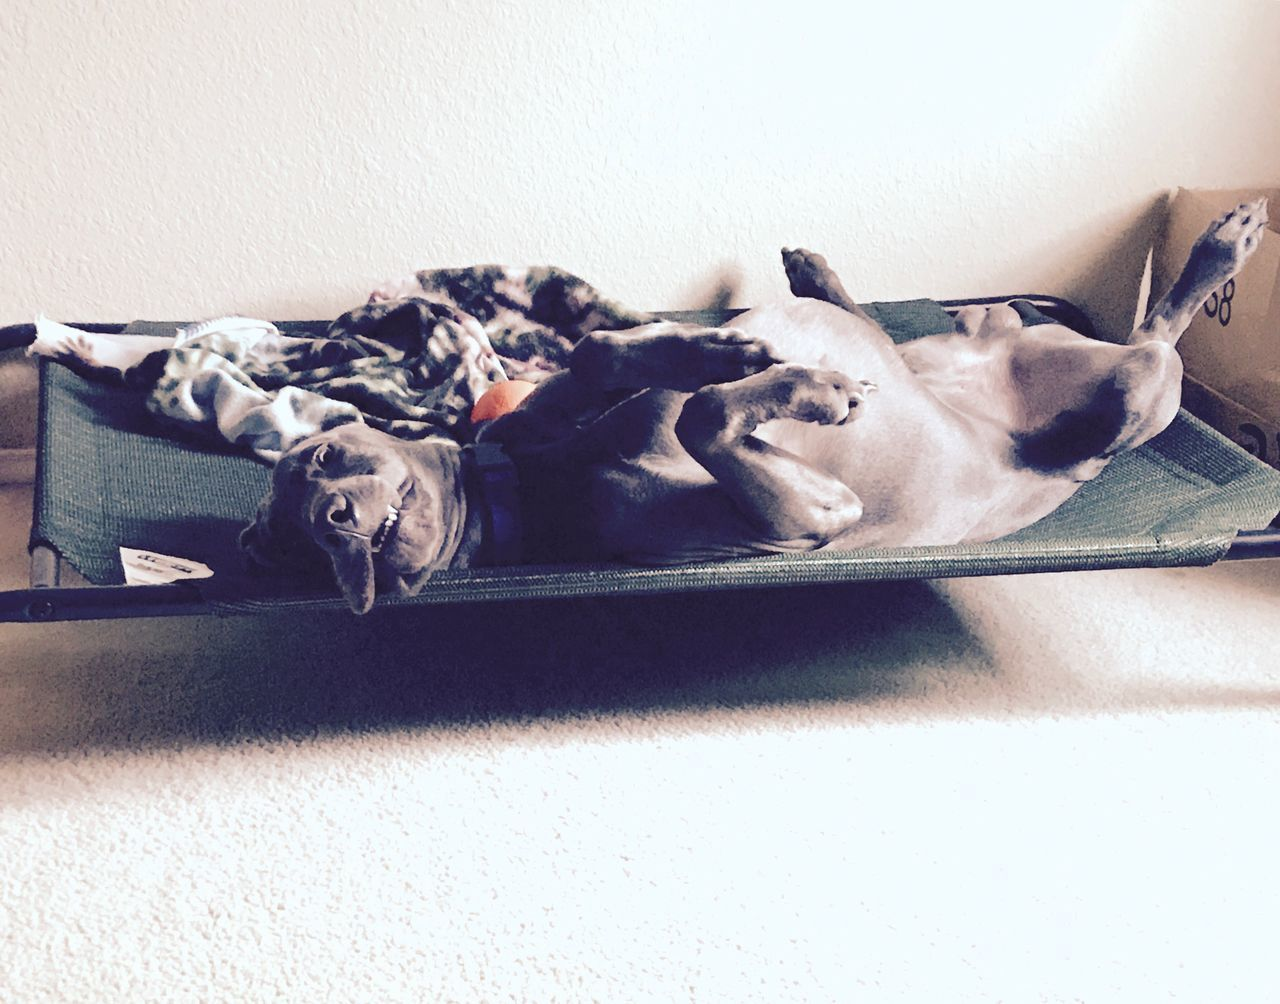 mammal, domestic animals, animal themes, dog, pets, indoors, no people, one animal, lying down, relaxation, day, close-up